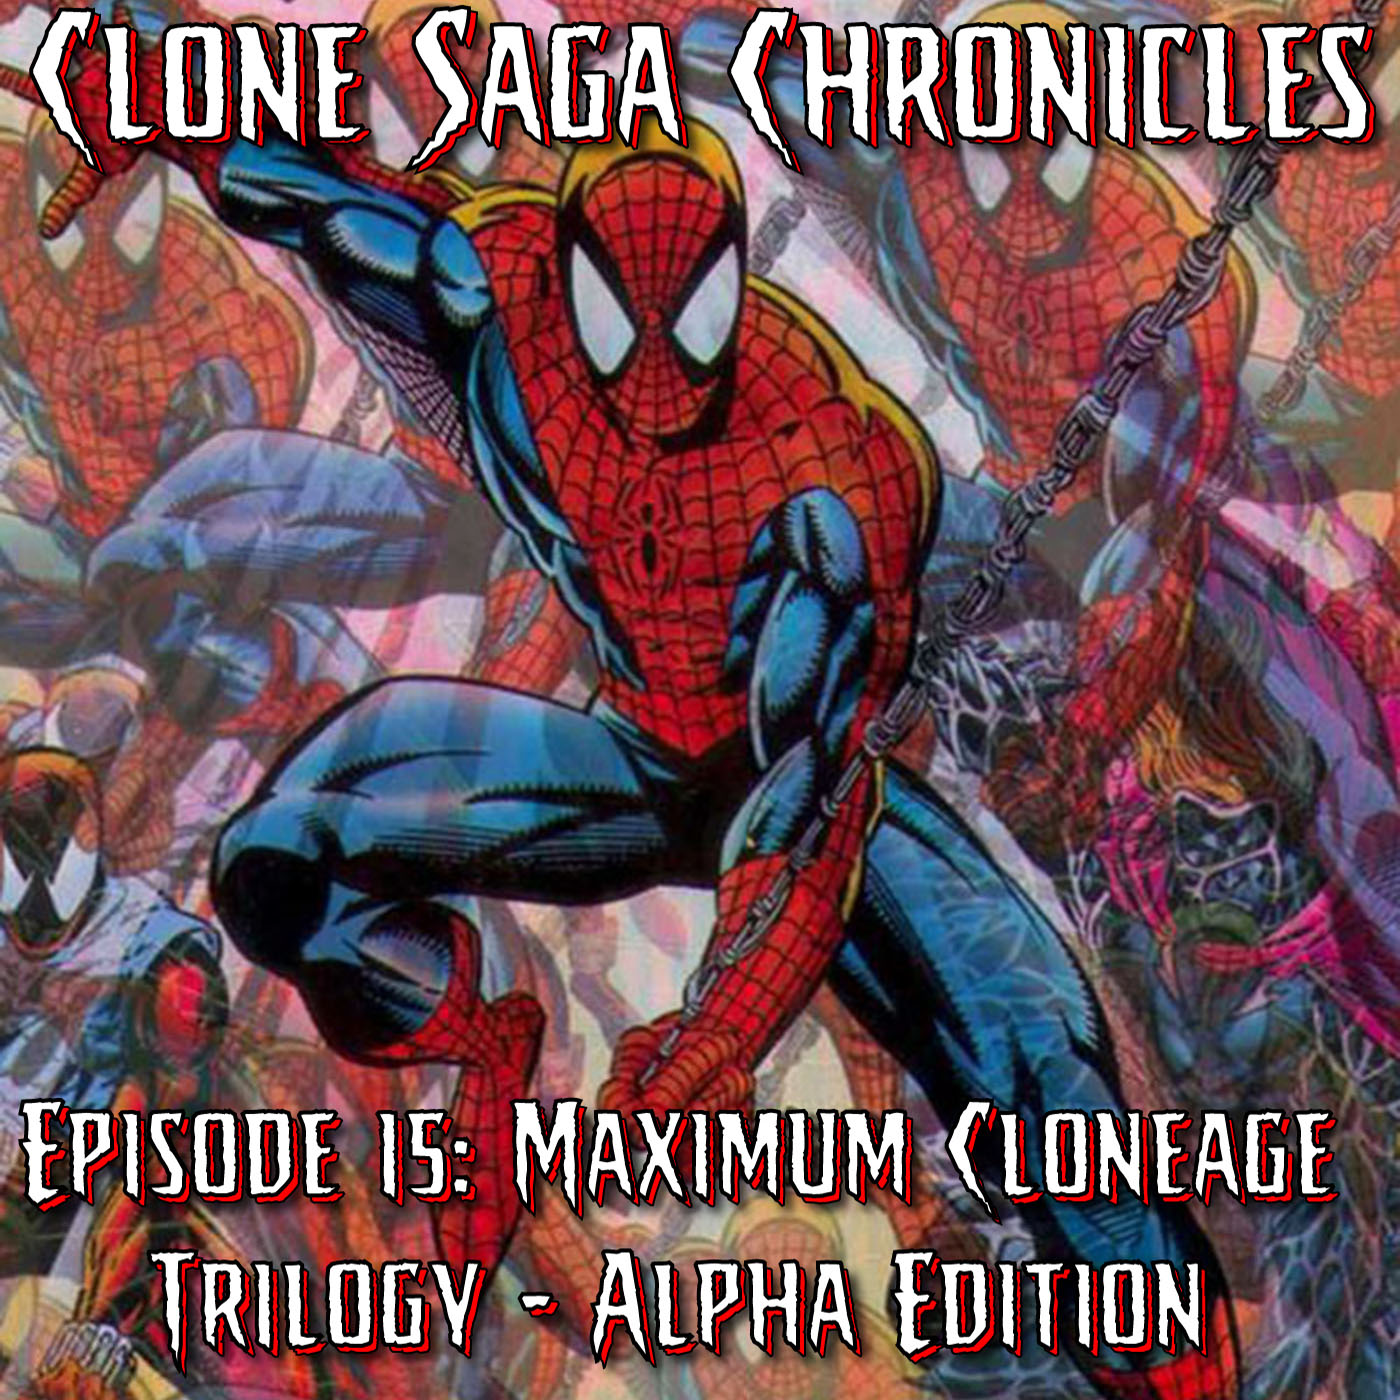 CSC Episode 15: Maximum Clonage: Alpha Edition (Cover Date August 1995) First Anniversary Special